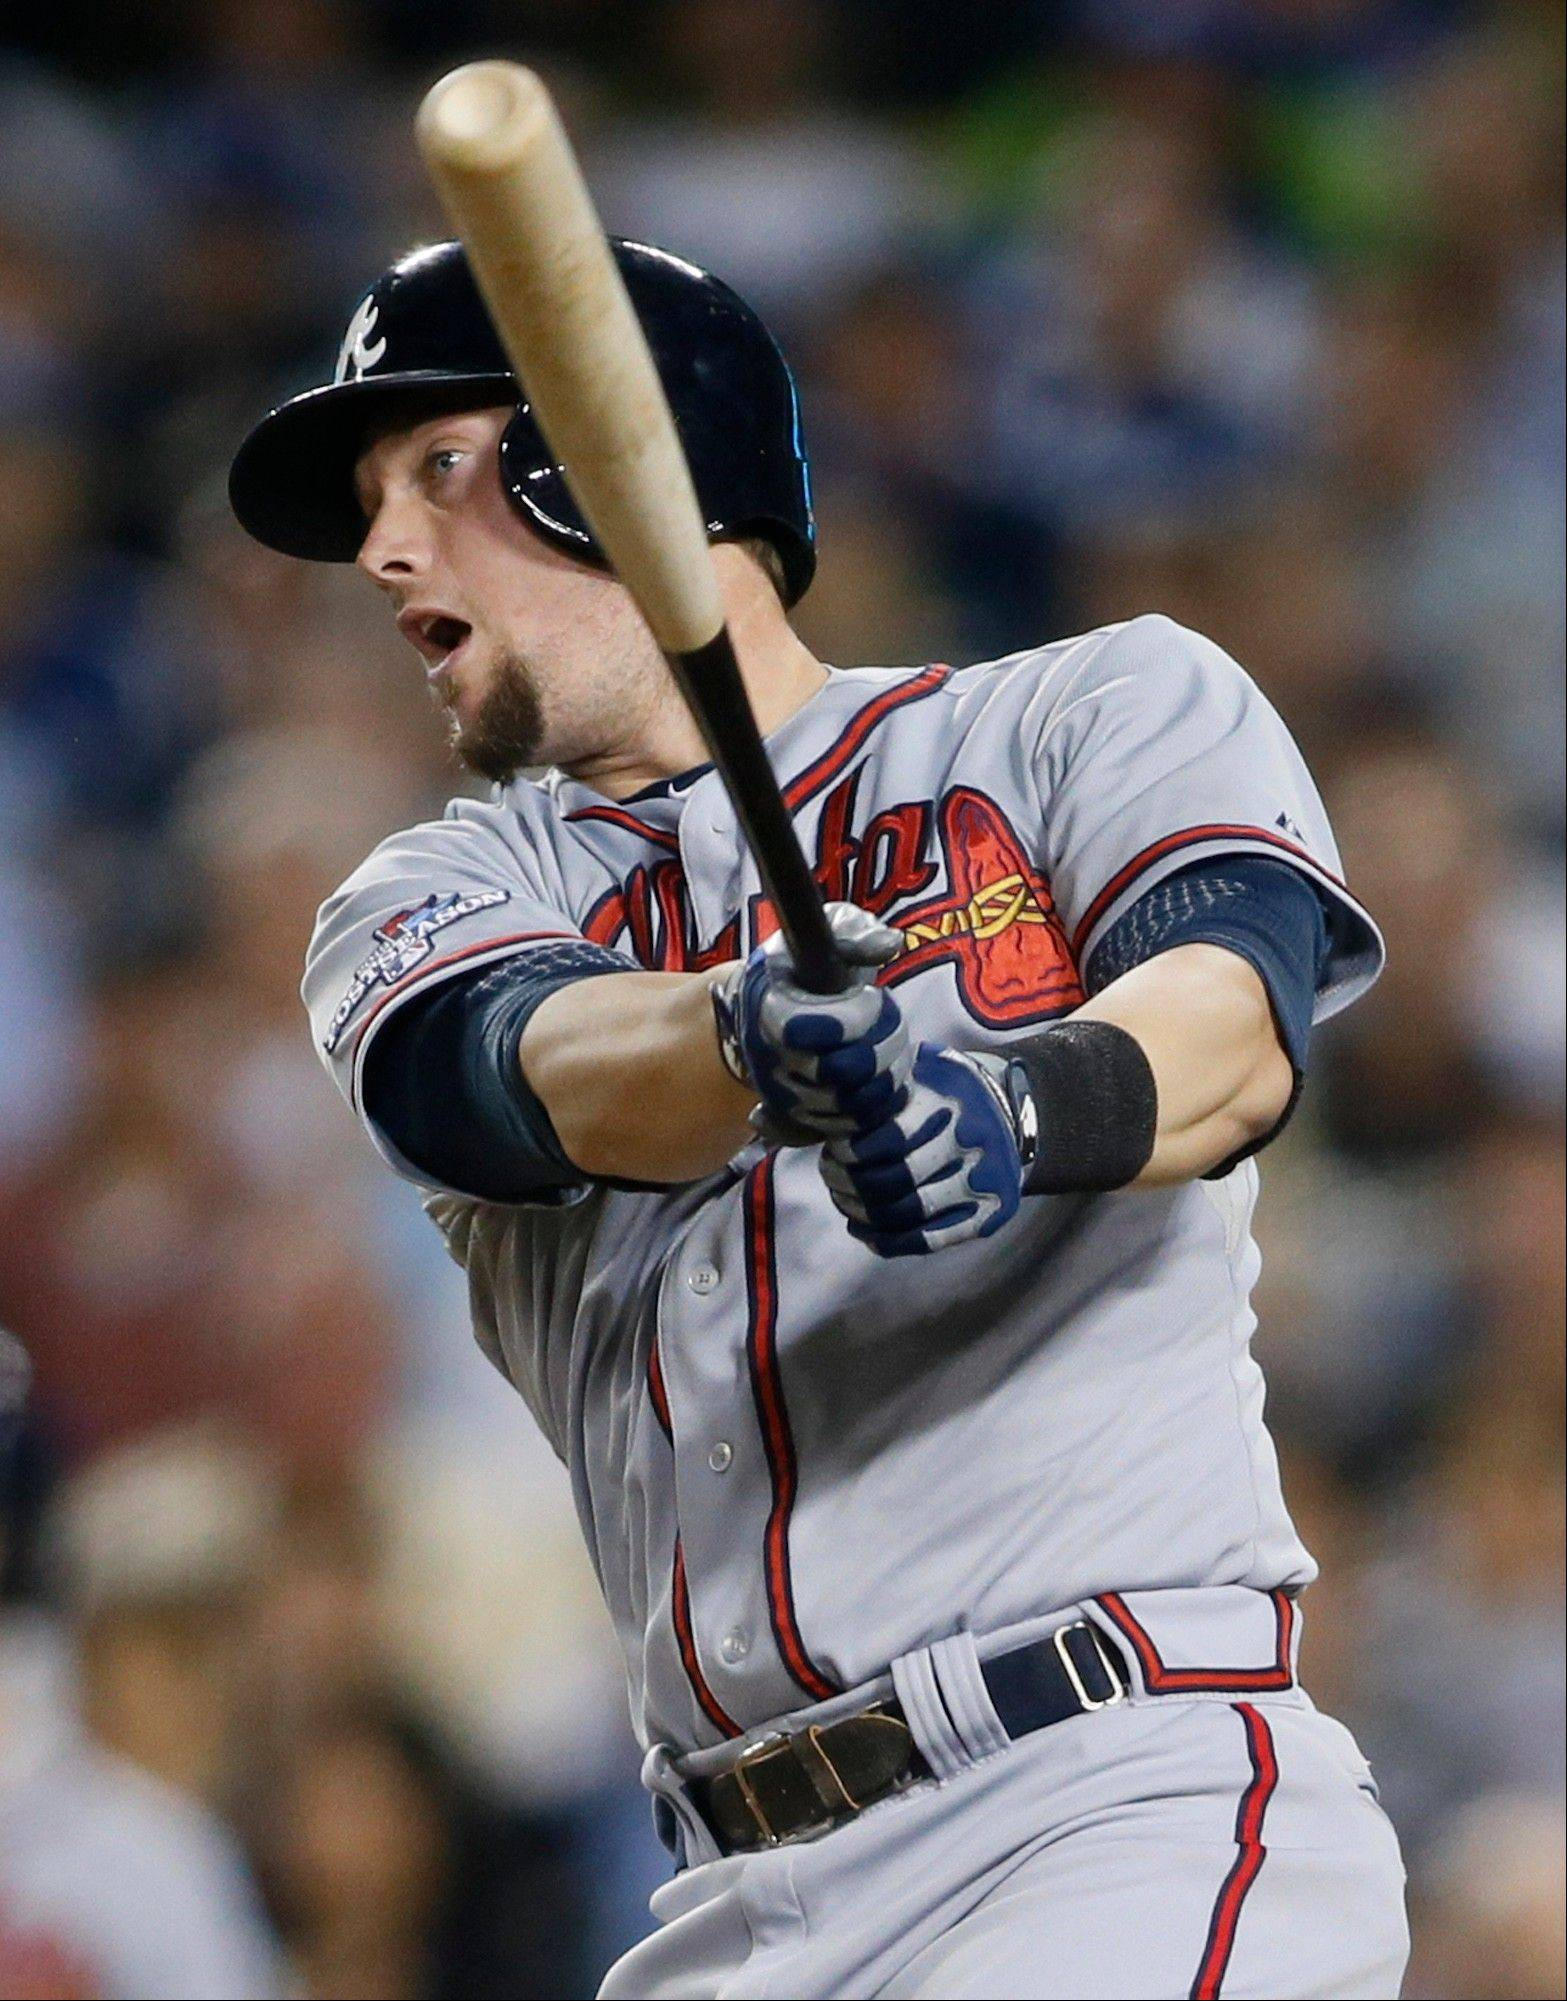 Chris Johnson hits an RBI single for the Braves in the fourth inning Monday night in Los Angeles.